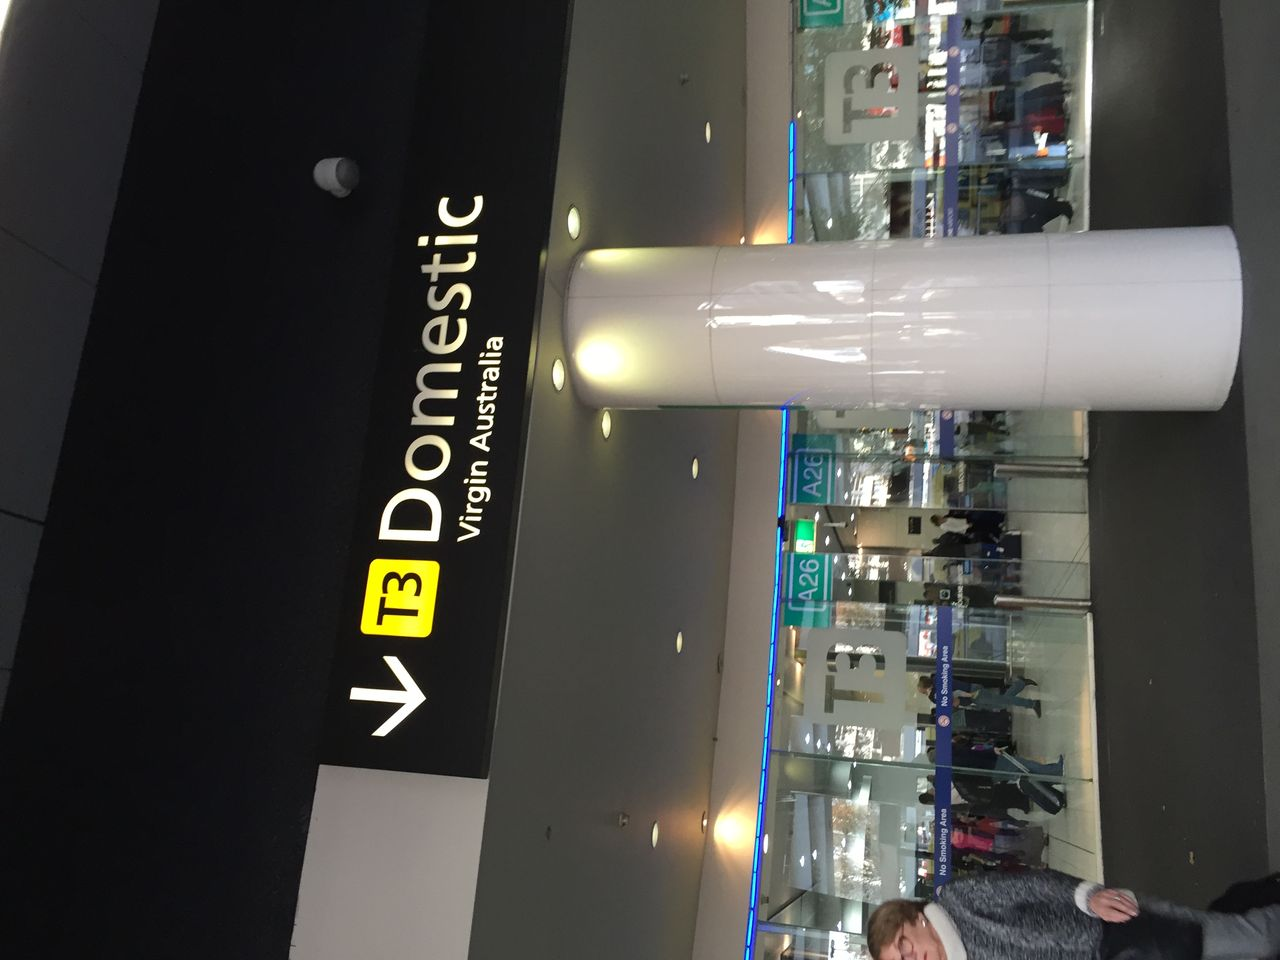 Review of Virgin Australia flight from Melbourne to Sydney